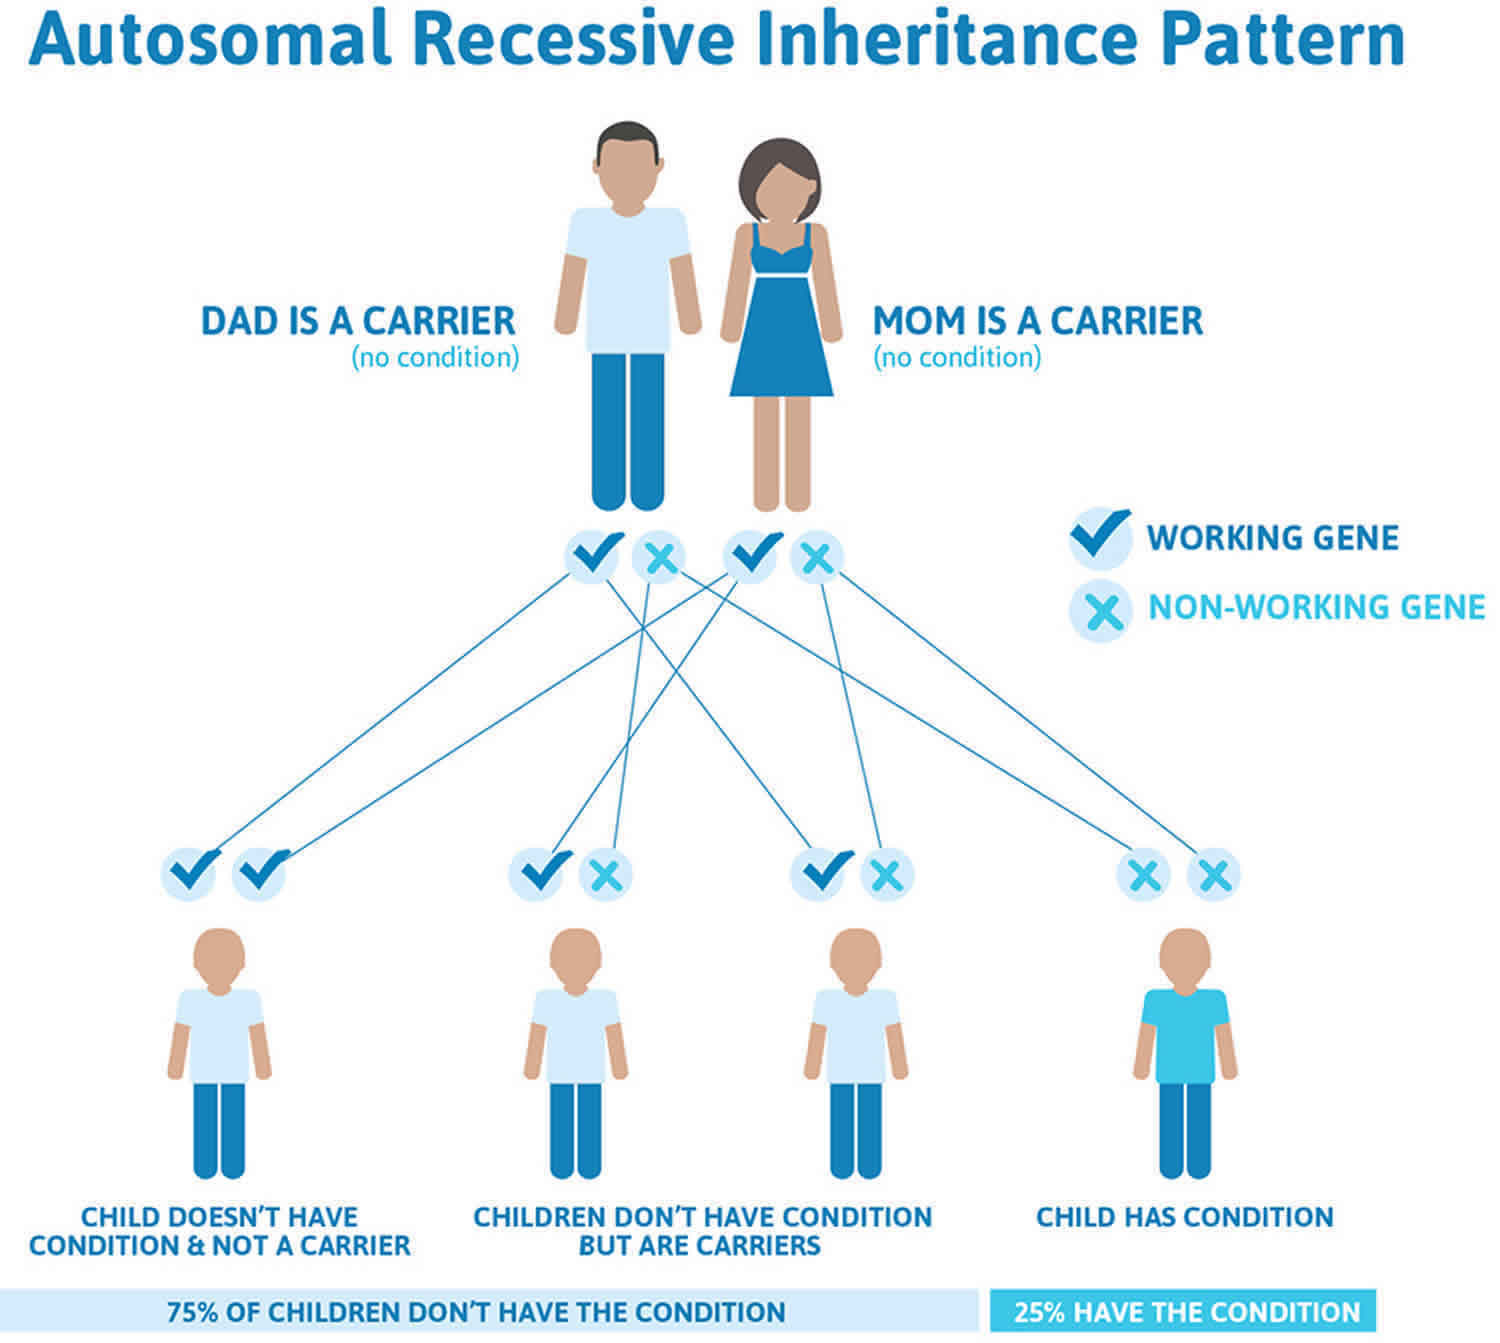 Griscelli syndrome autosomal recessive inheritance pattern